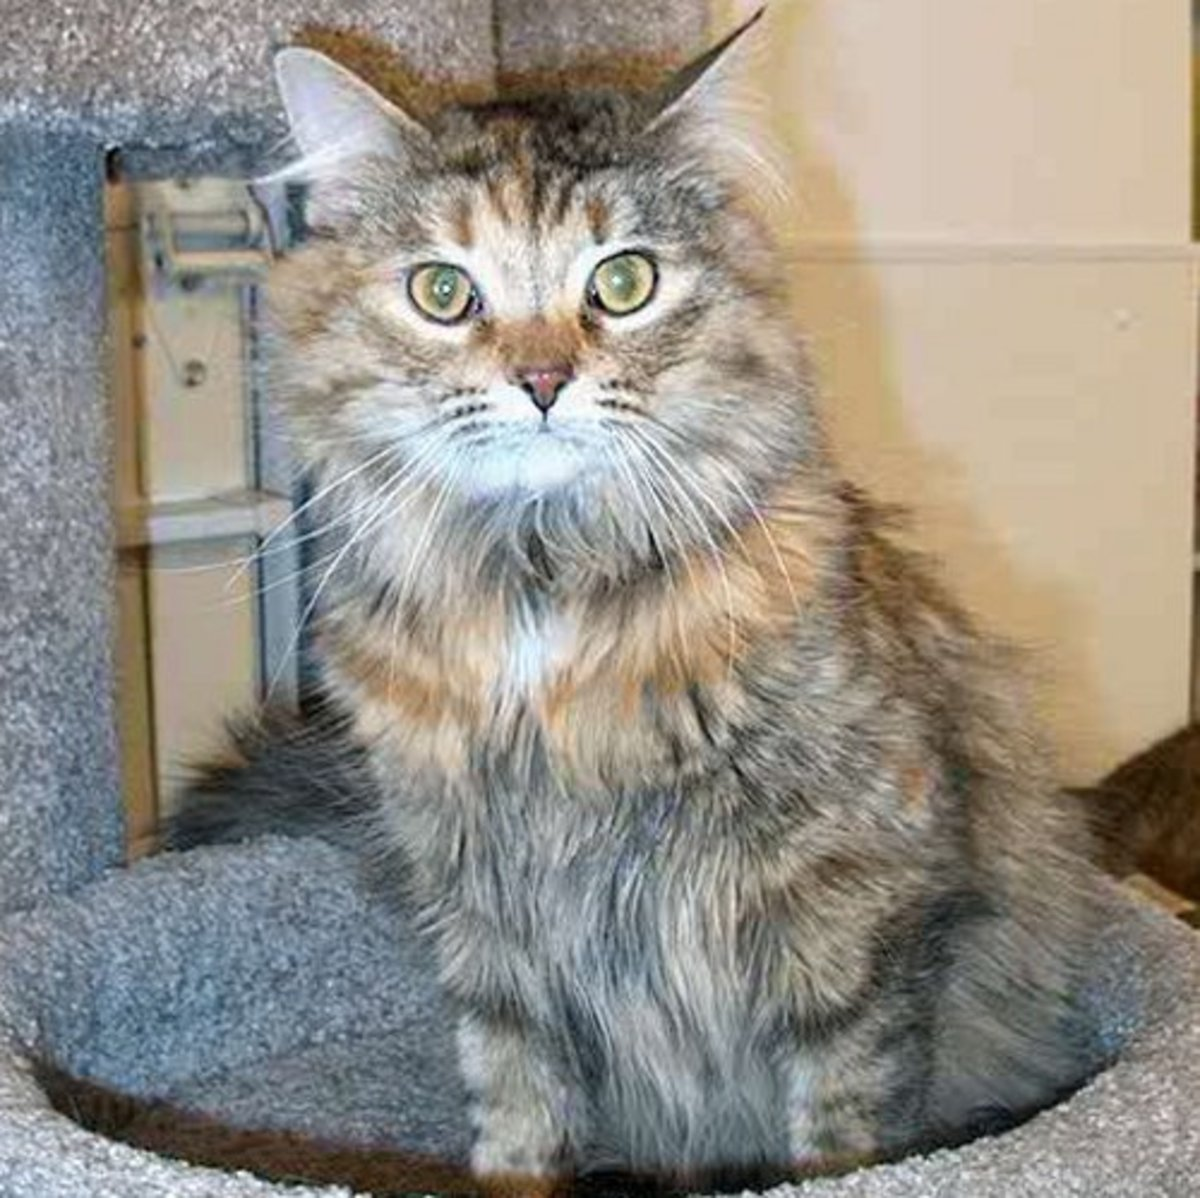 A Domestic Long Haired Cat